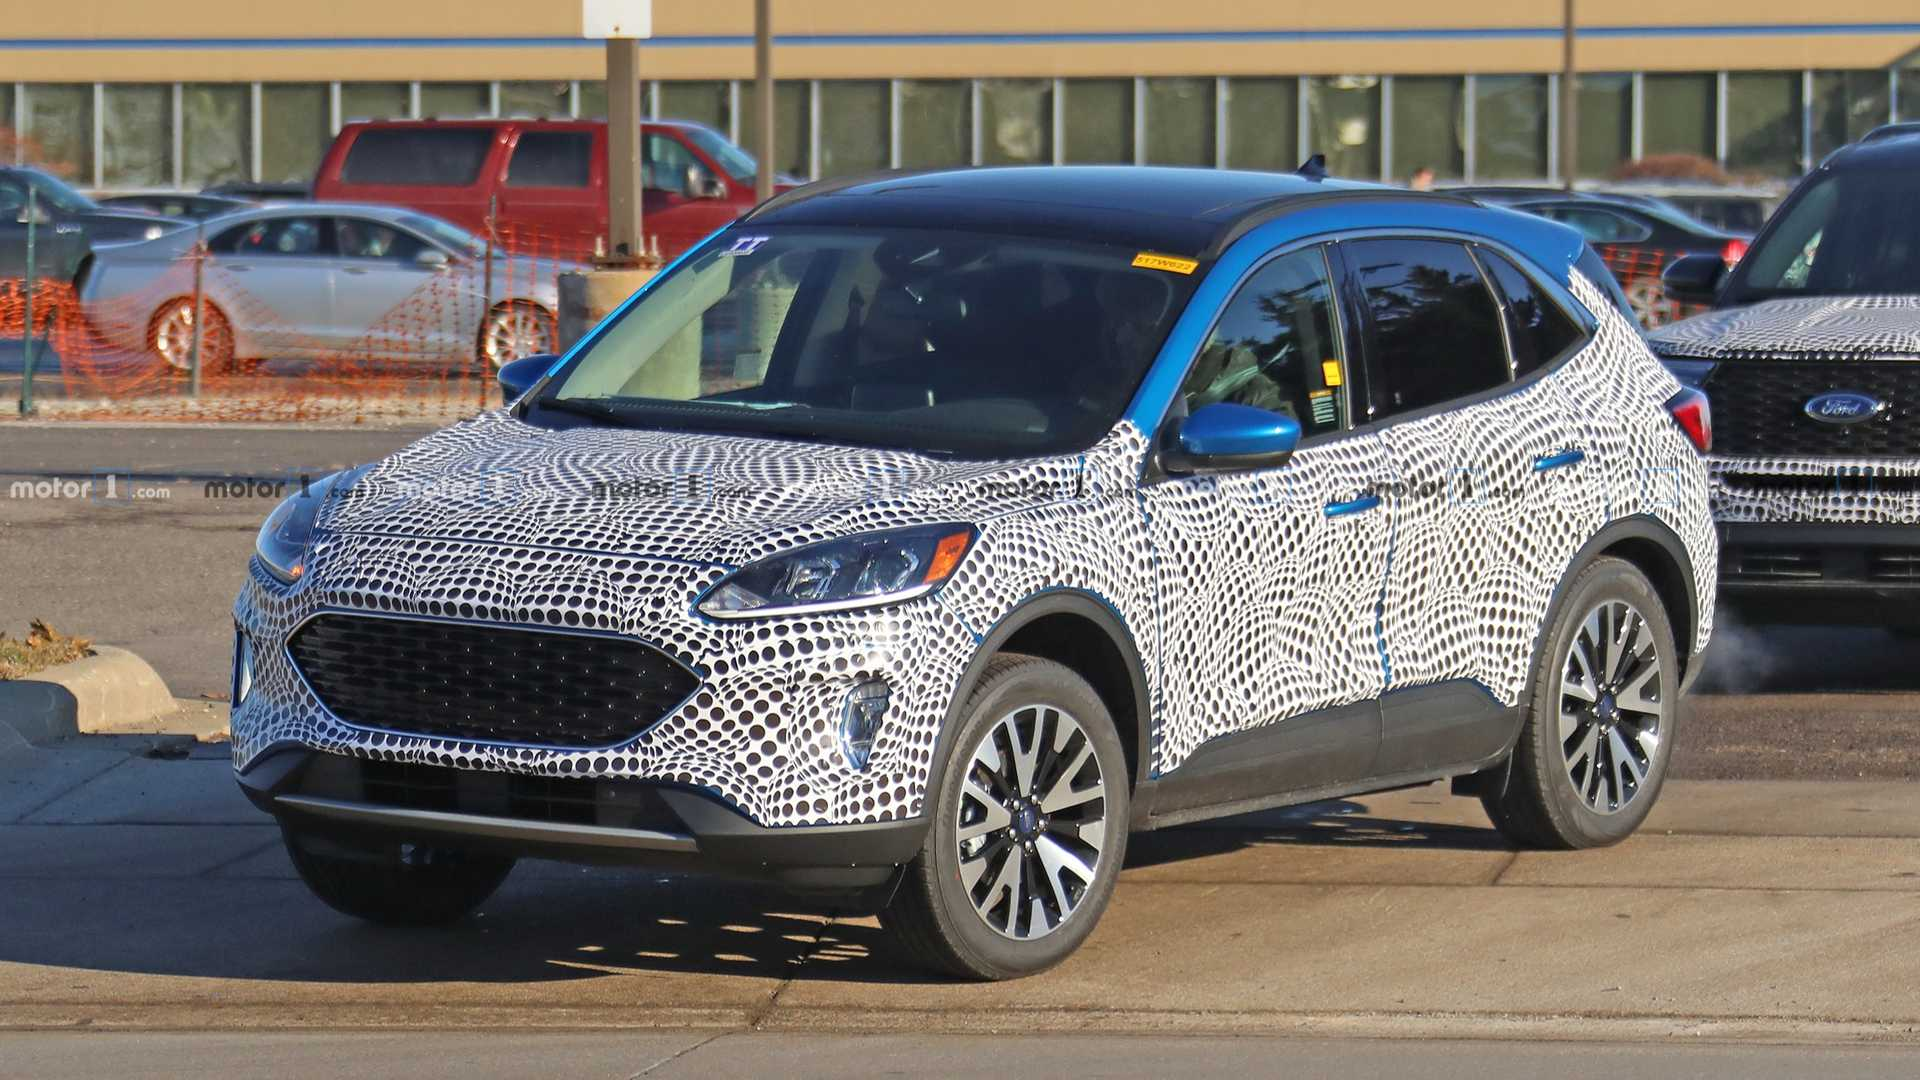 54 All New 2020 Ford Escape First Drive